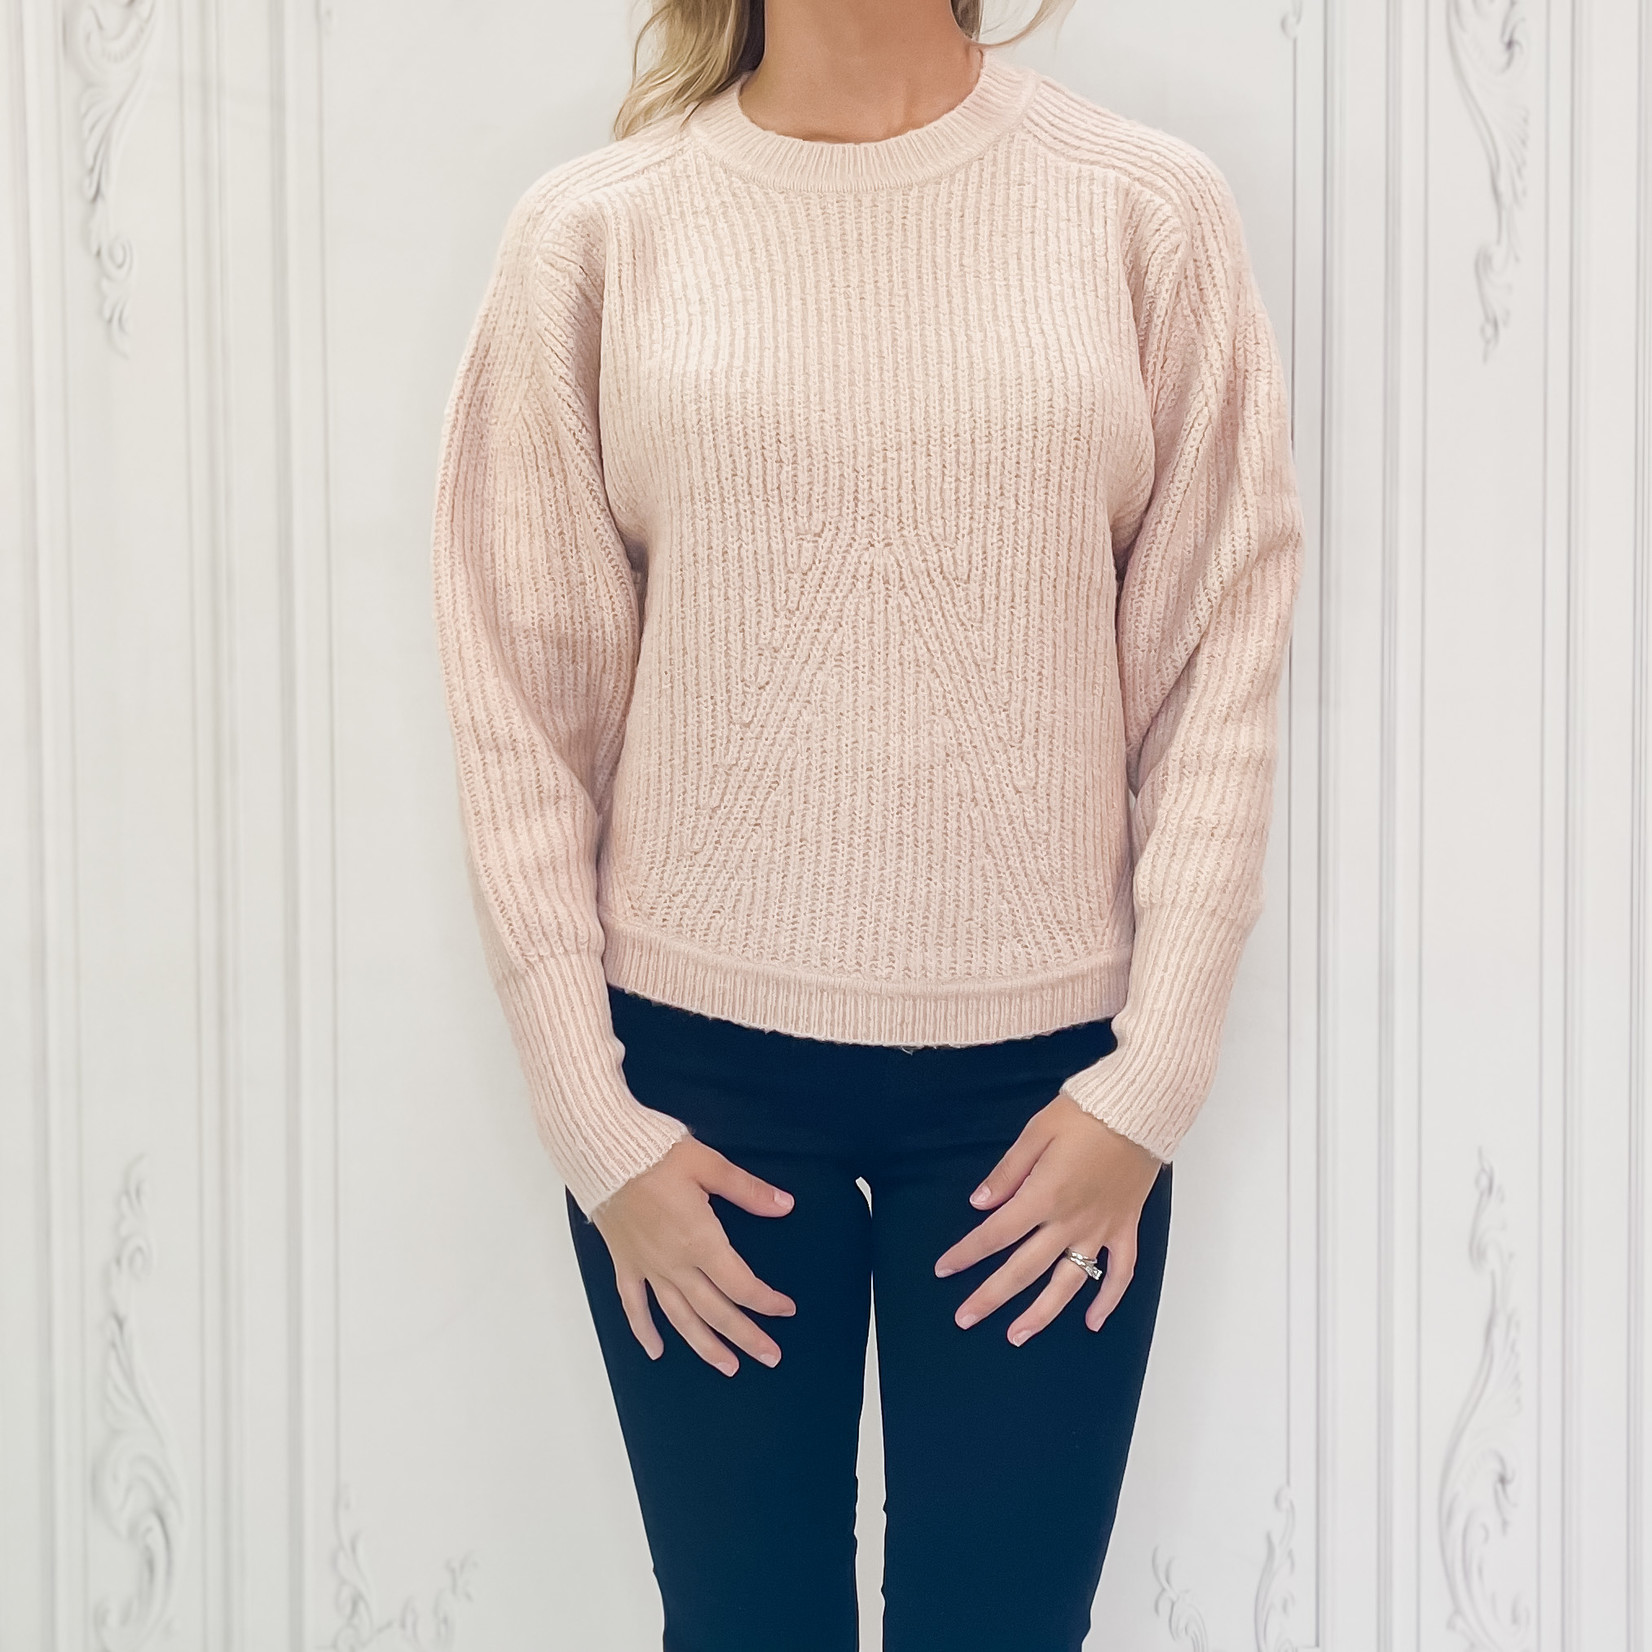 rd style - v pattern ribbed sweater